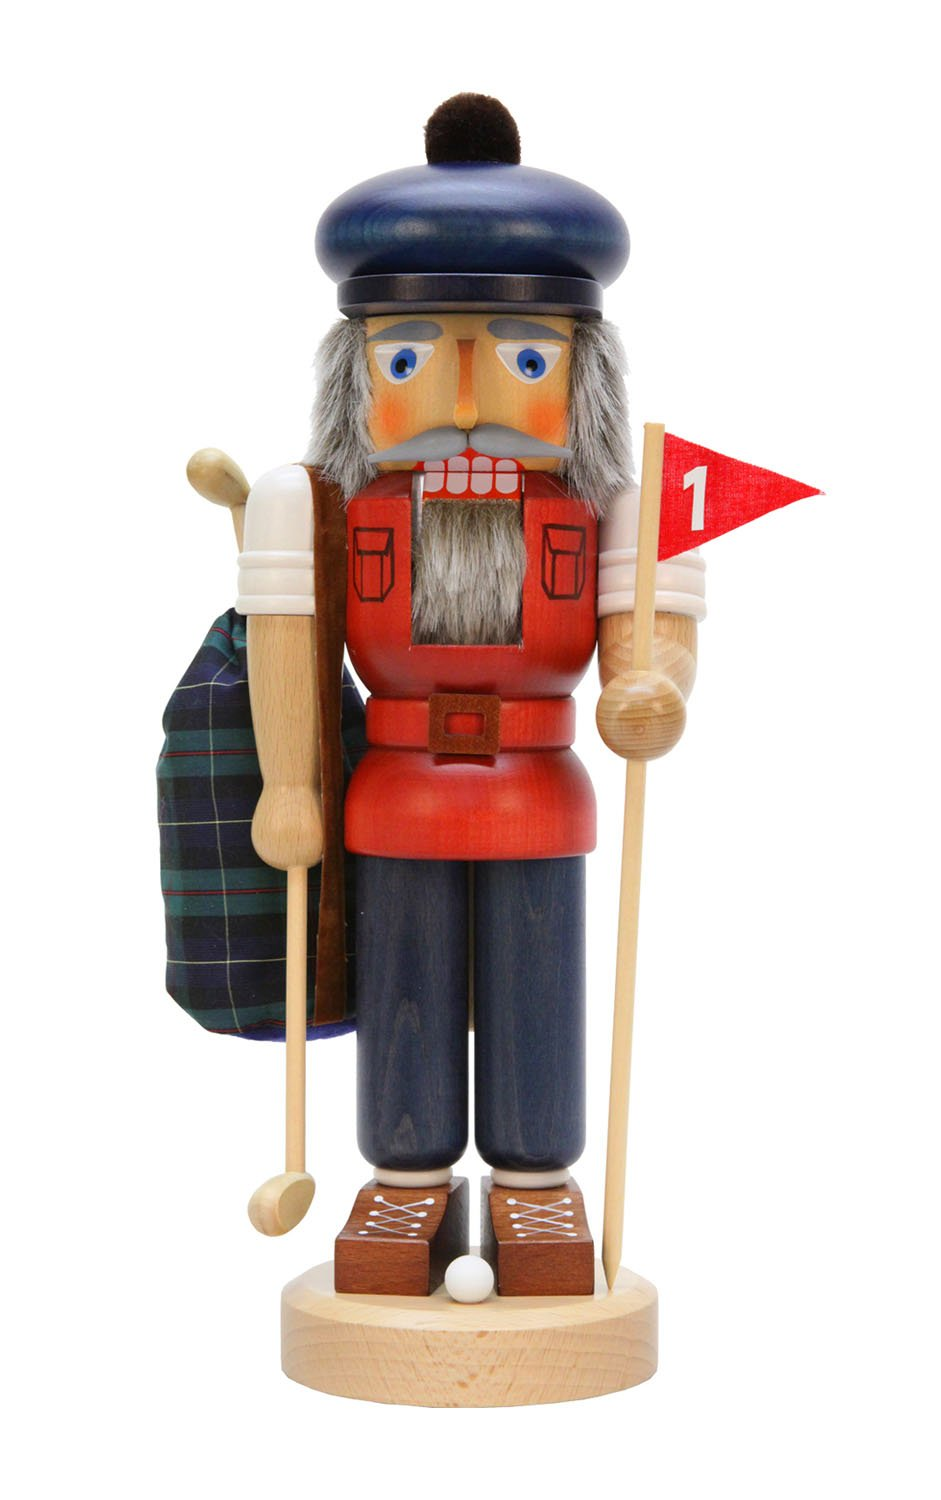 Alexander Taron Christian Ulbricht Decorative Golfer Nutcracker